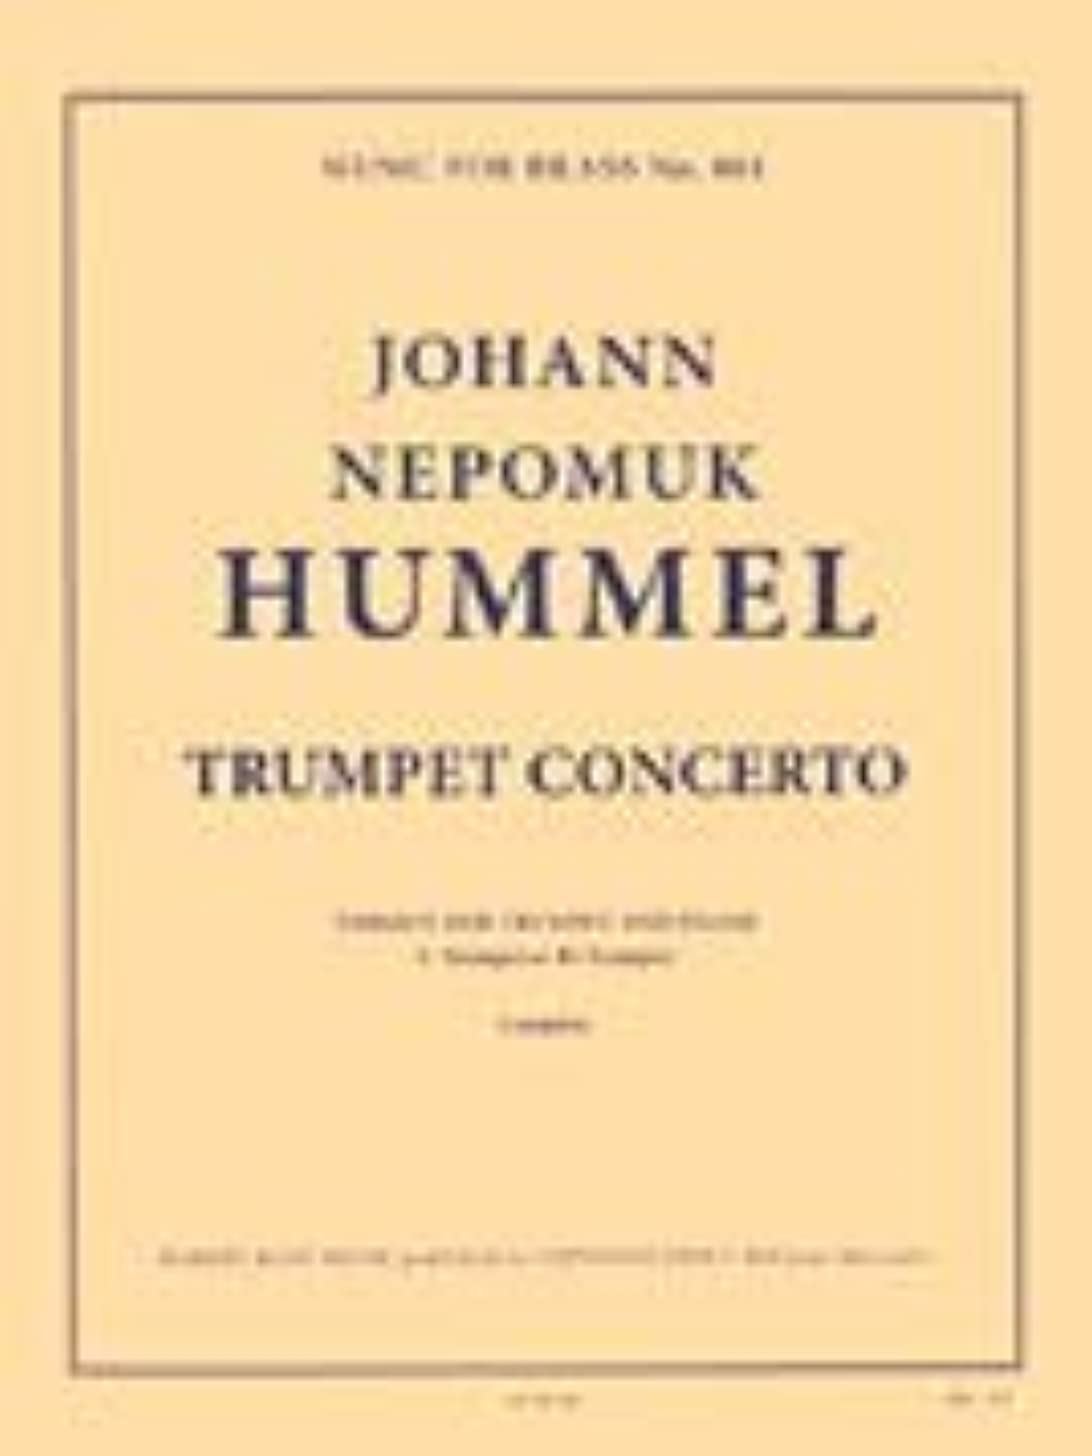 Trumpet Concerto in E-Flat: Music for Brass No. 801 Version for Trumpet and Piano